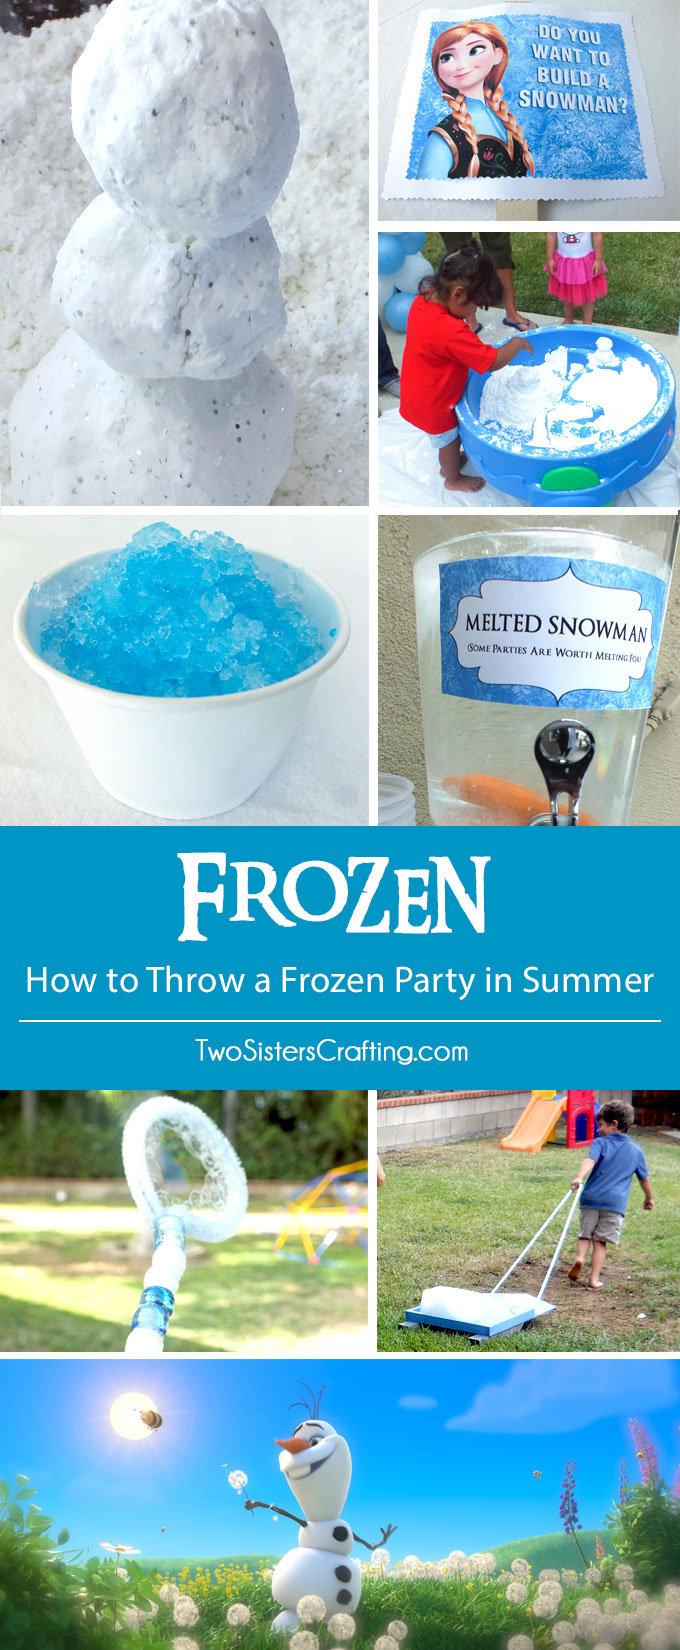 How to Throw a Frozen Party in Summer - We have some great ideas for how to throw a Disney Frozen Birhtday Party in Summer including DIY Snow, Snow Cones, Ice Block Races and more! Follow us for more fun Frozen Party Ideas.